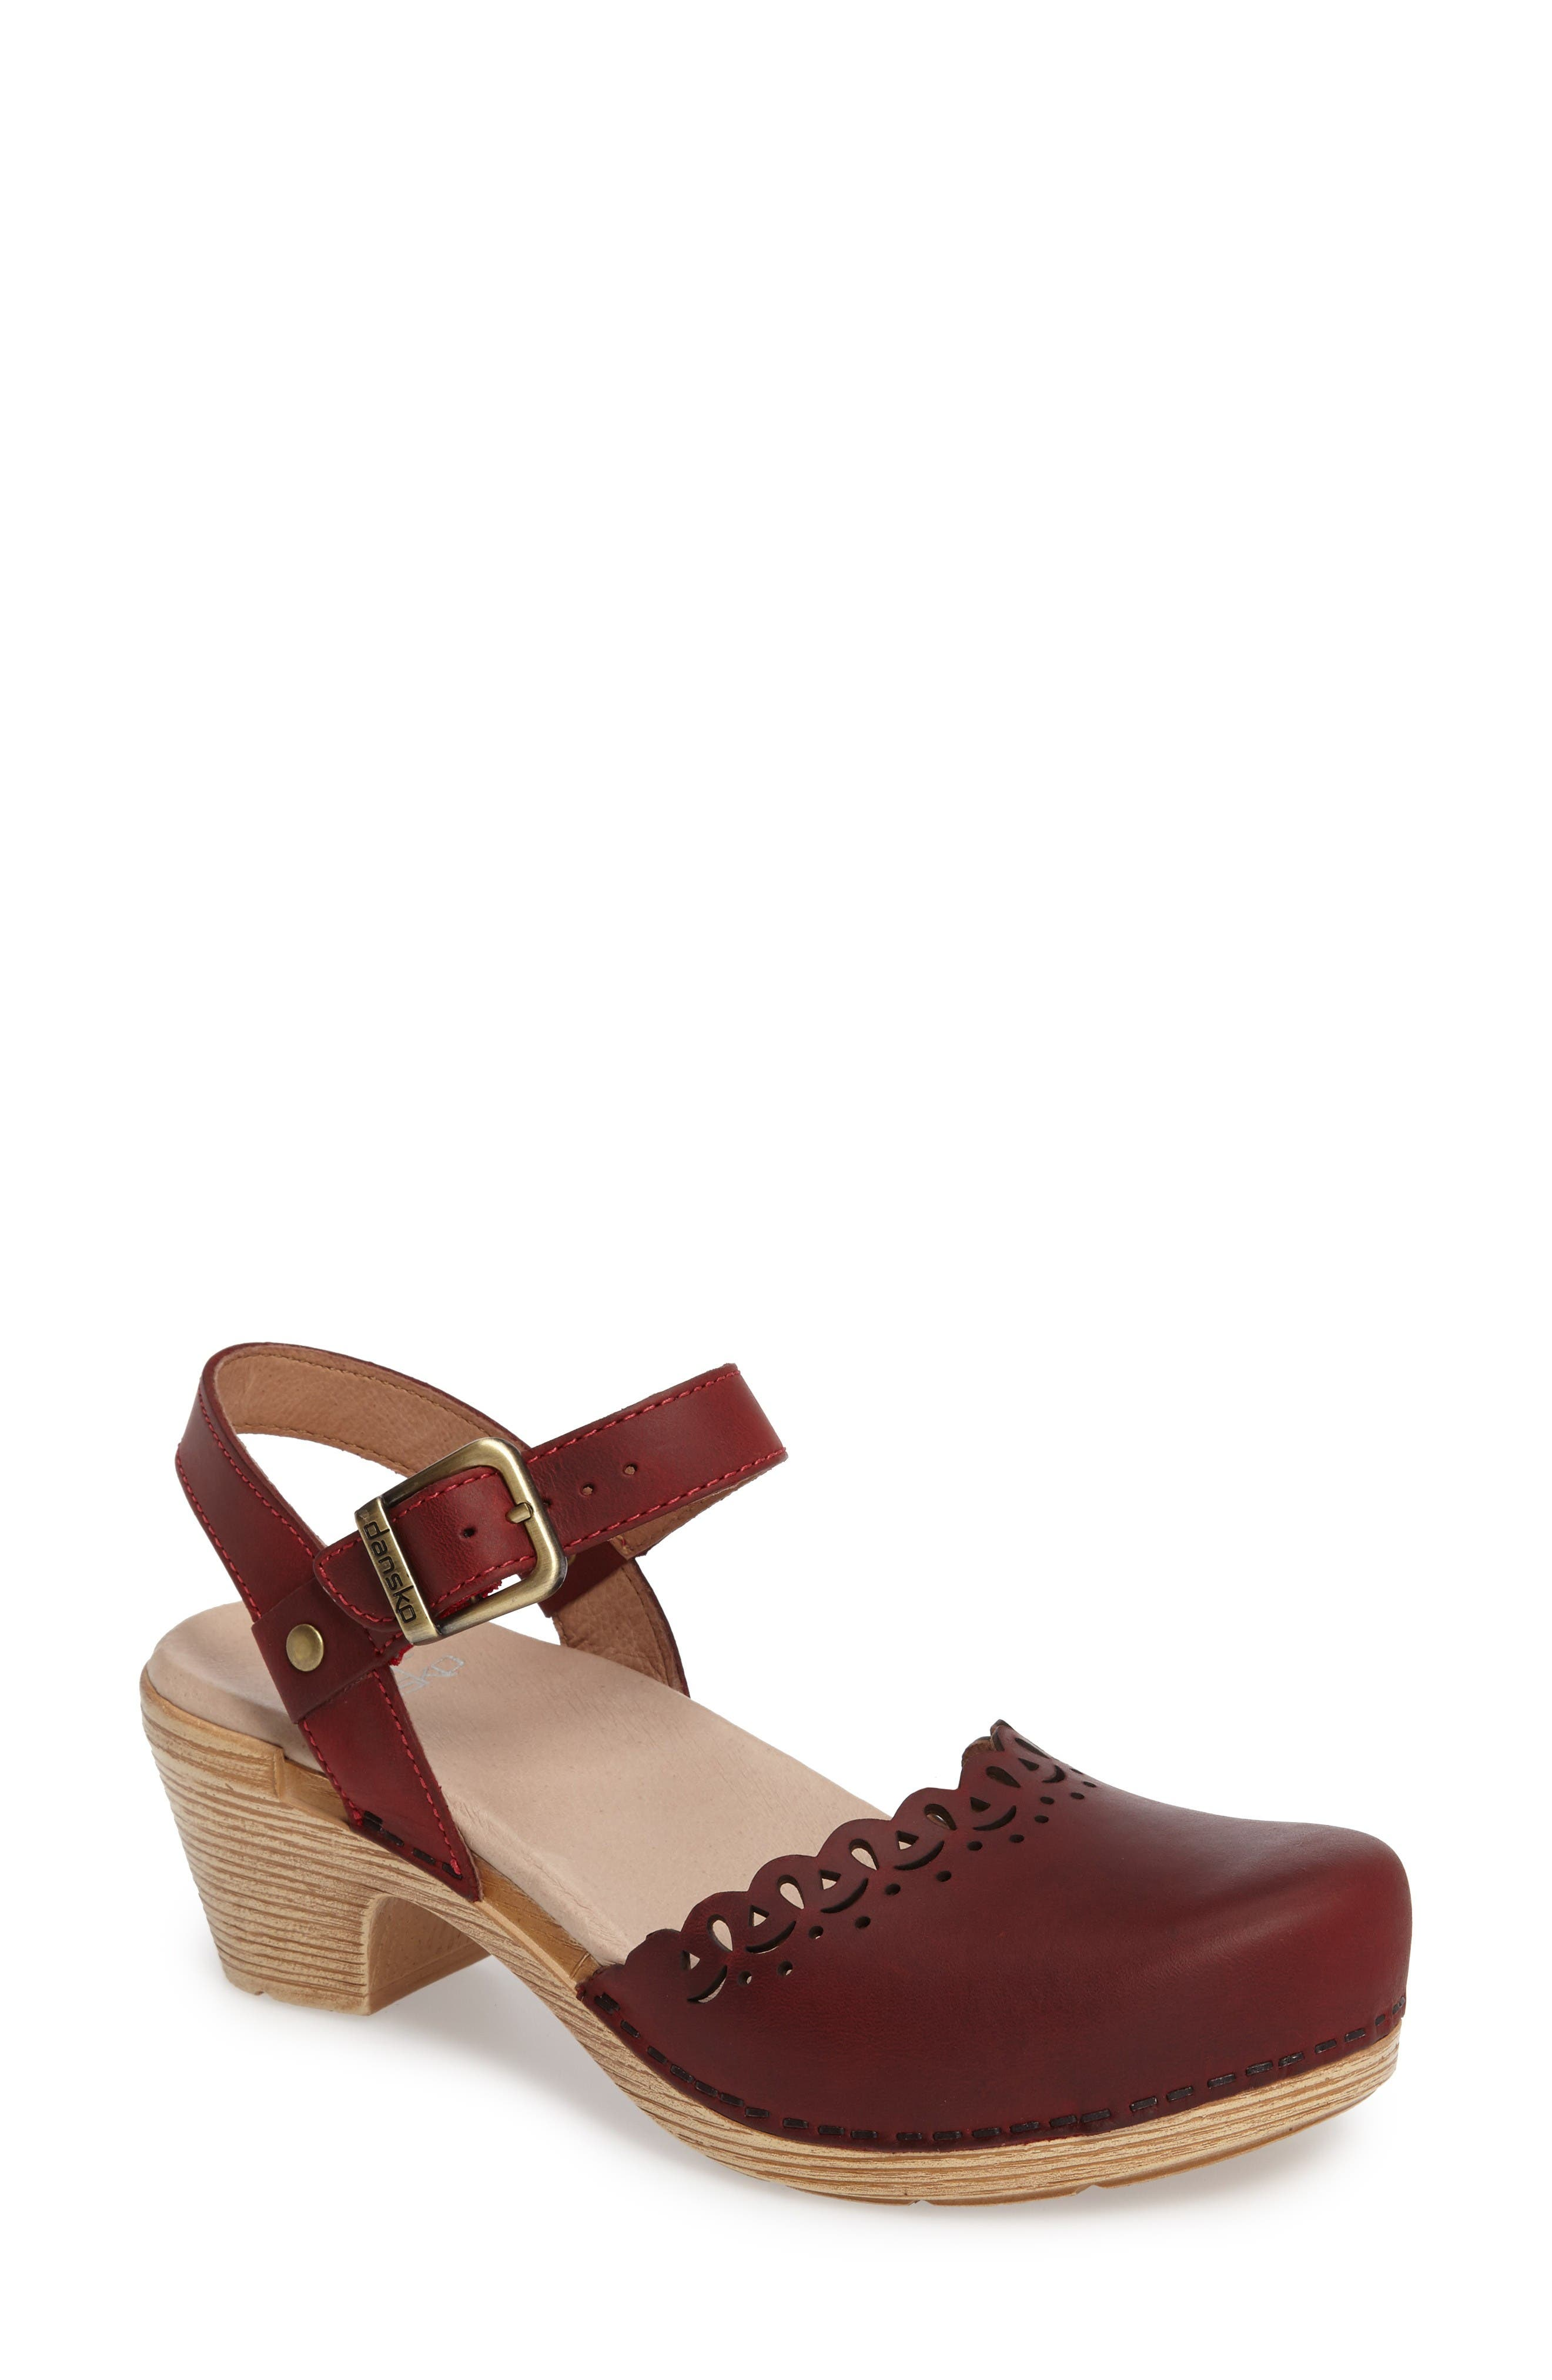 'Marta' Ankle Strap Clog,                         Main,                         color, Red Oiled Leather